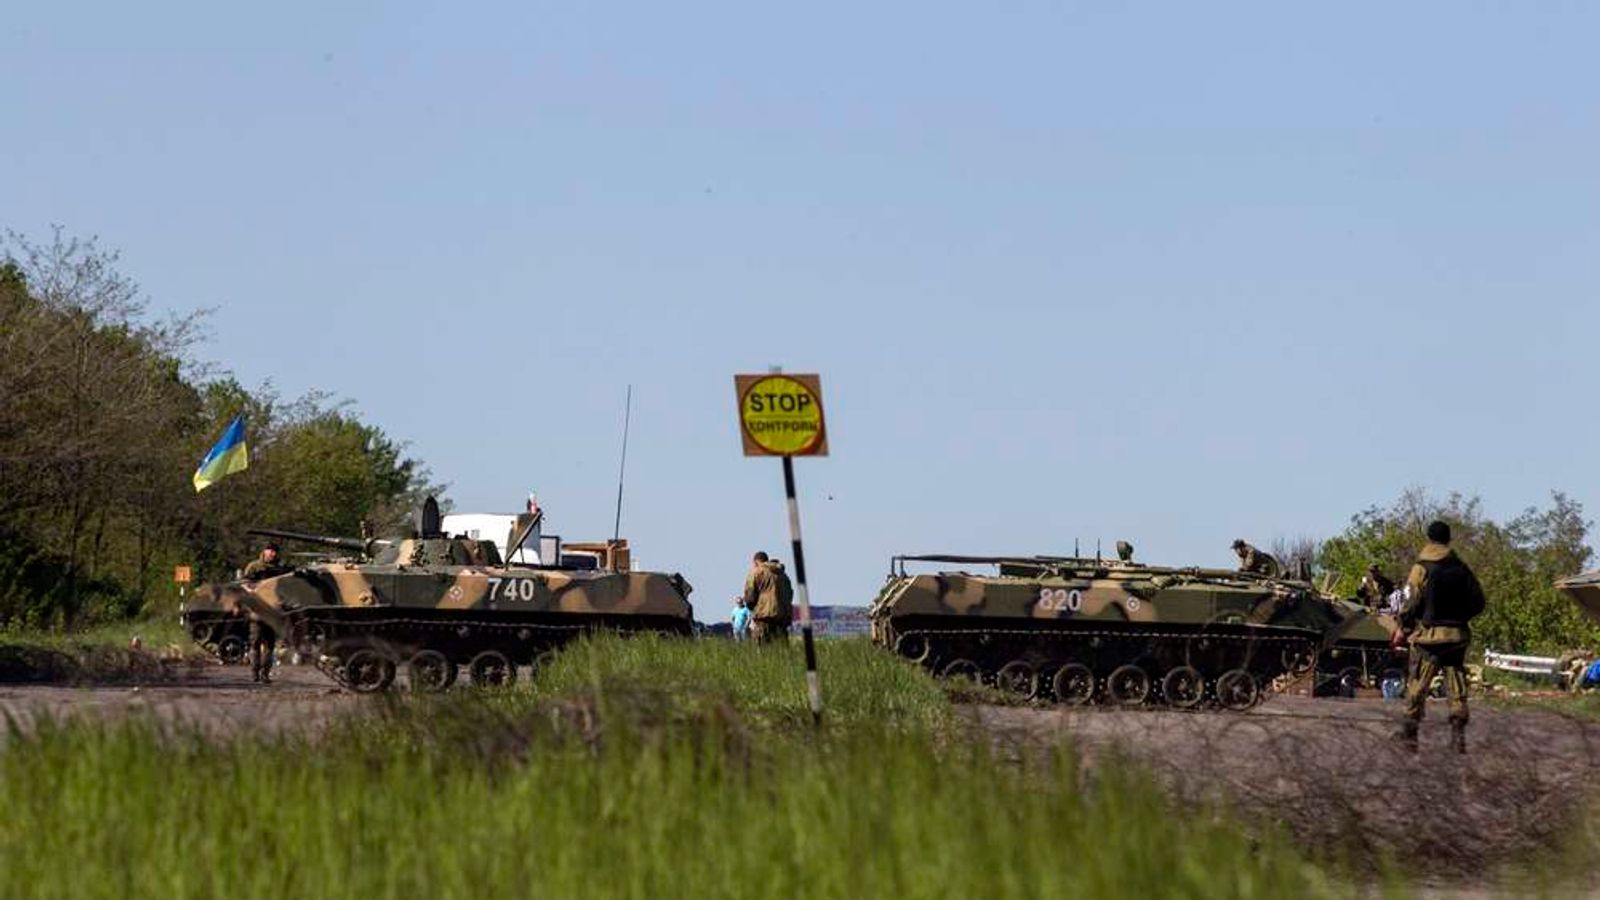 Ukrainian soldiers walk near armoured personnel carriers at a checkpoint in near the town of Slaviansk, in eastern Ukraine